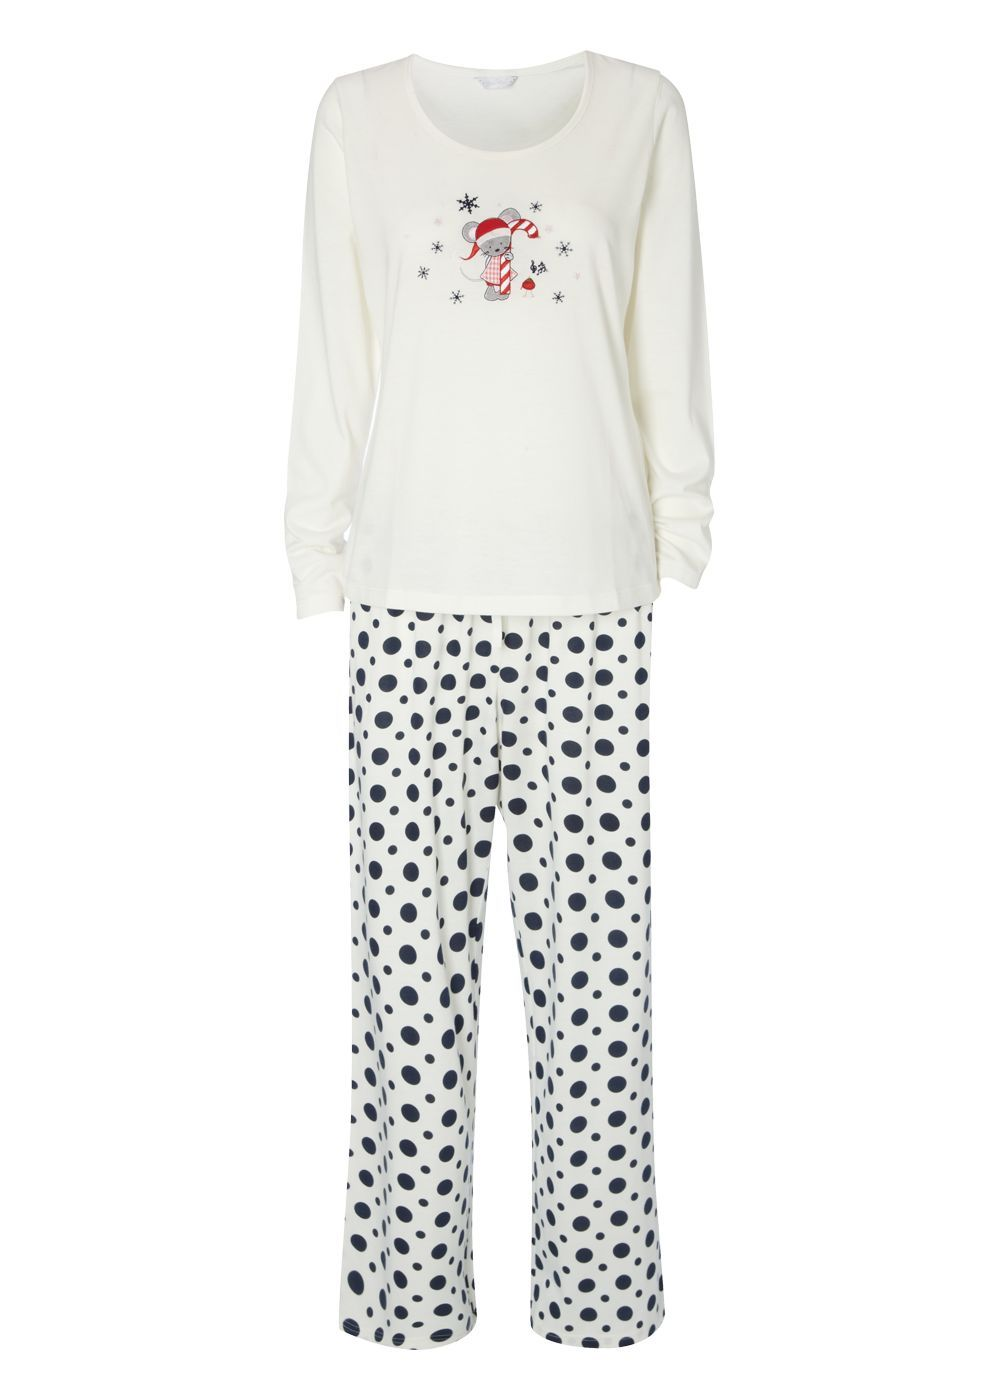 Fashion and homeware brand Matalan have launched a matching pyjama range for the whole family, and cosy night's in are about to get a whole lot cuter. Featuring a multi-coloured star print, the.